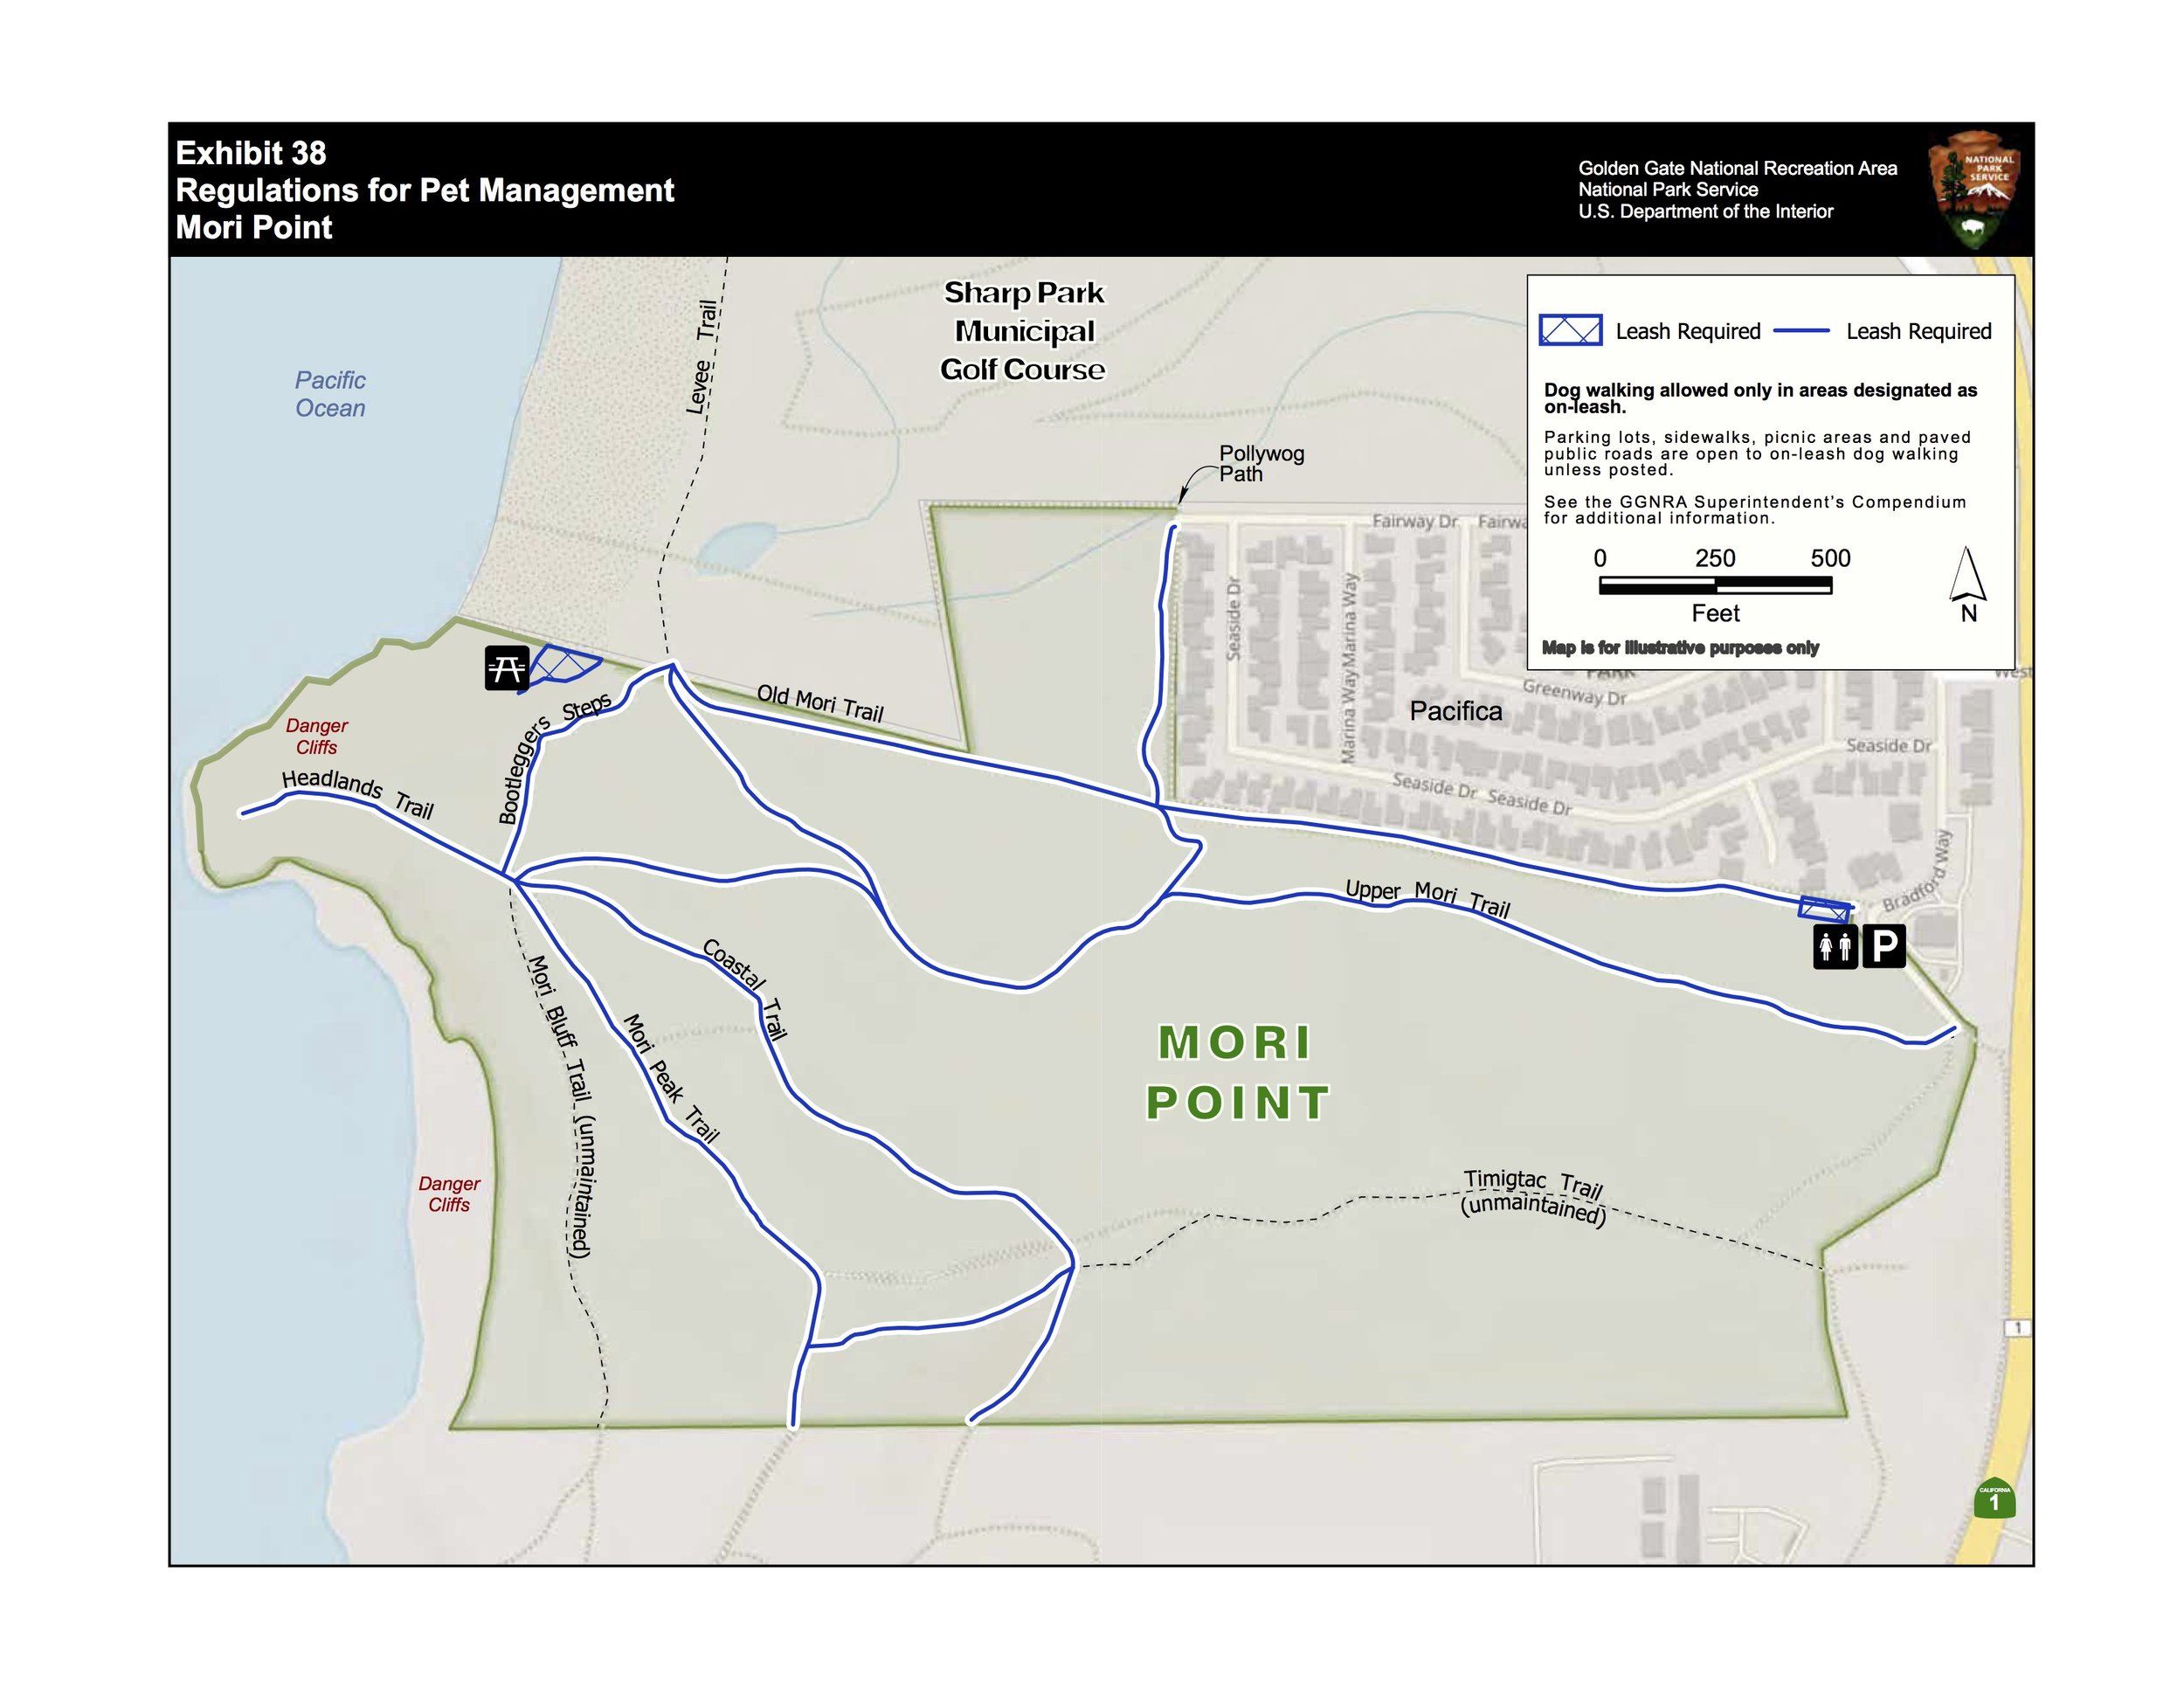 2019 compendium map eliminating dog walking on the mori bluff and timigtac trails   *note: hikers without dogs can still access these trails